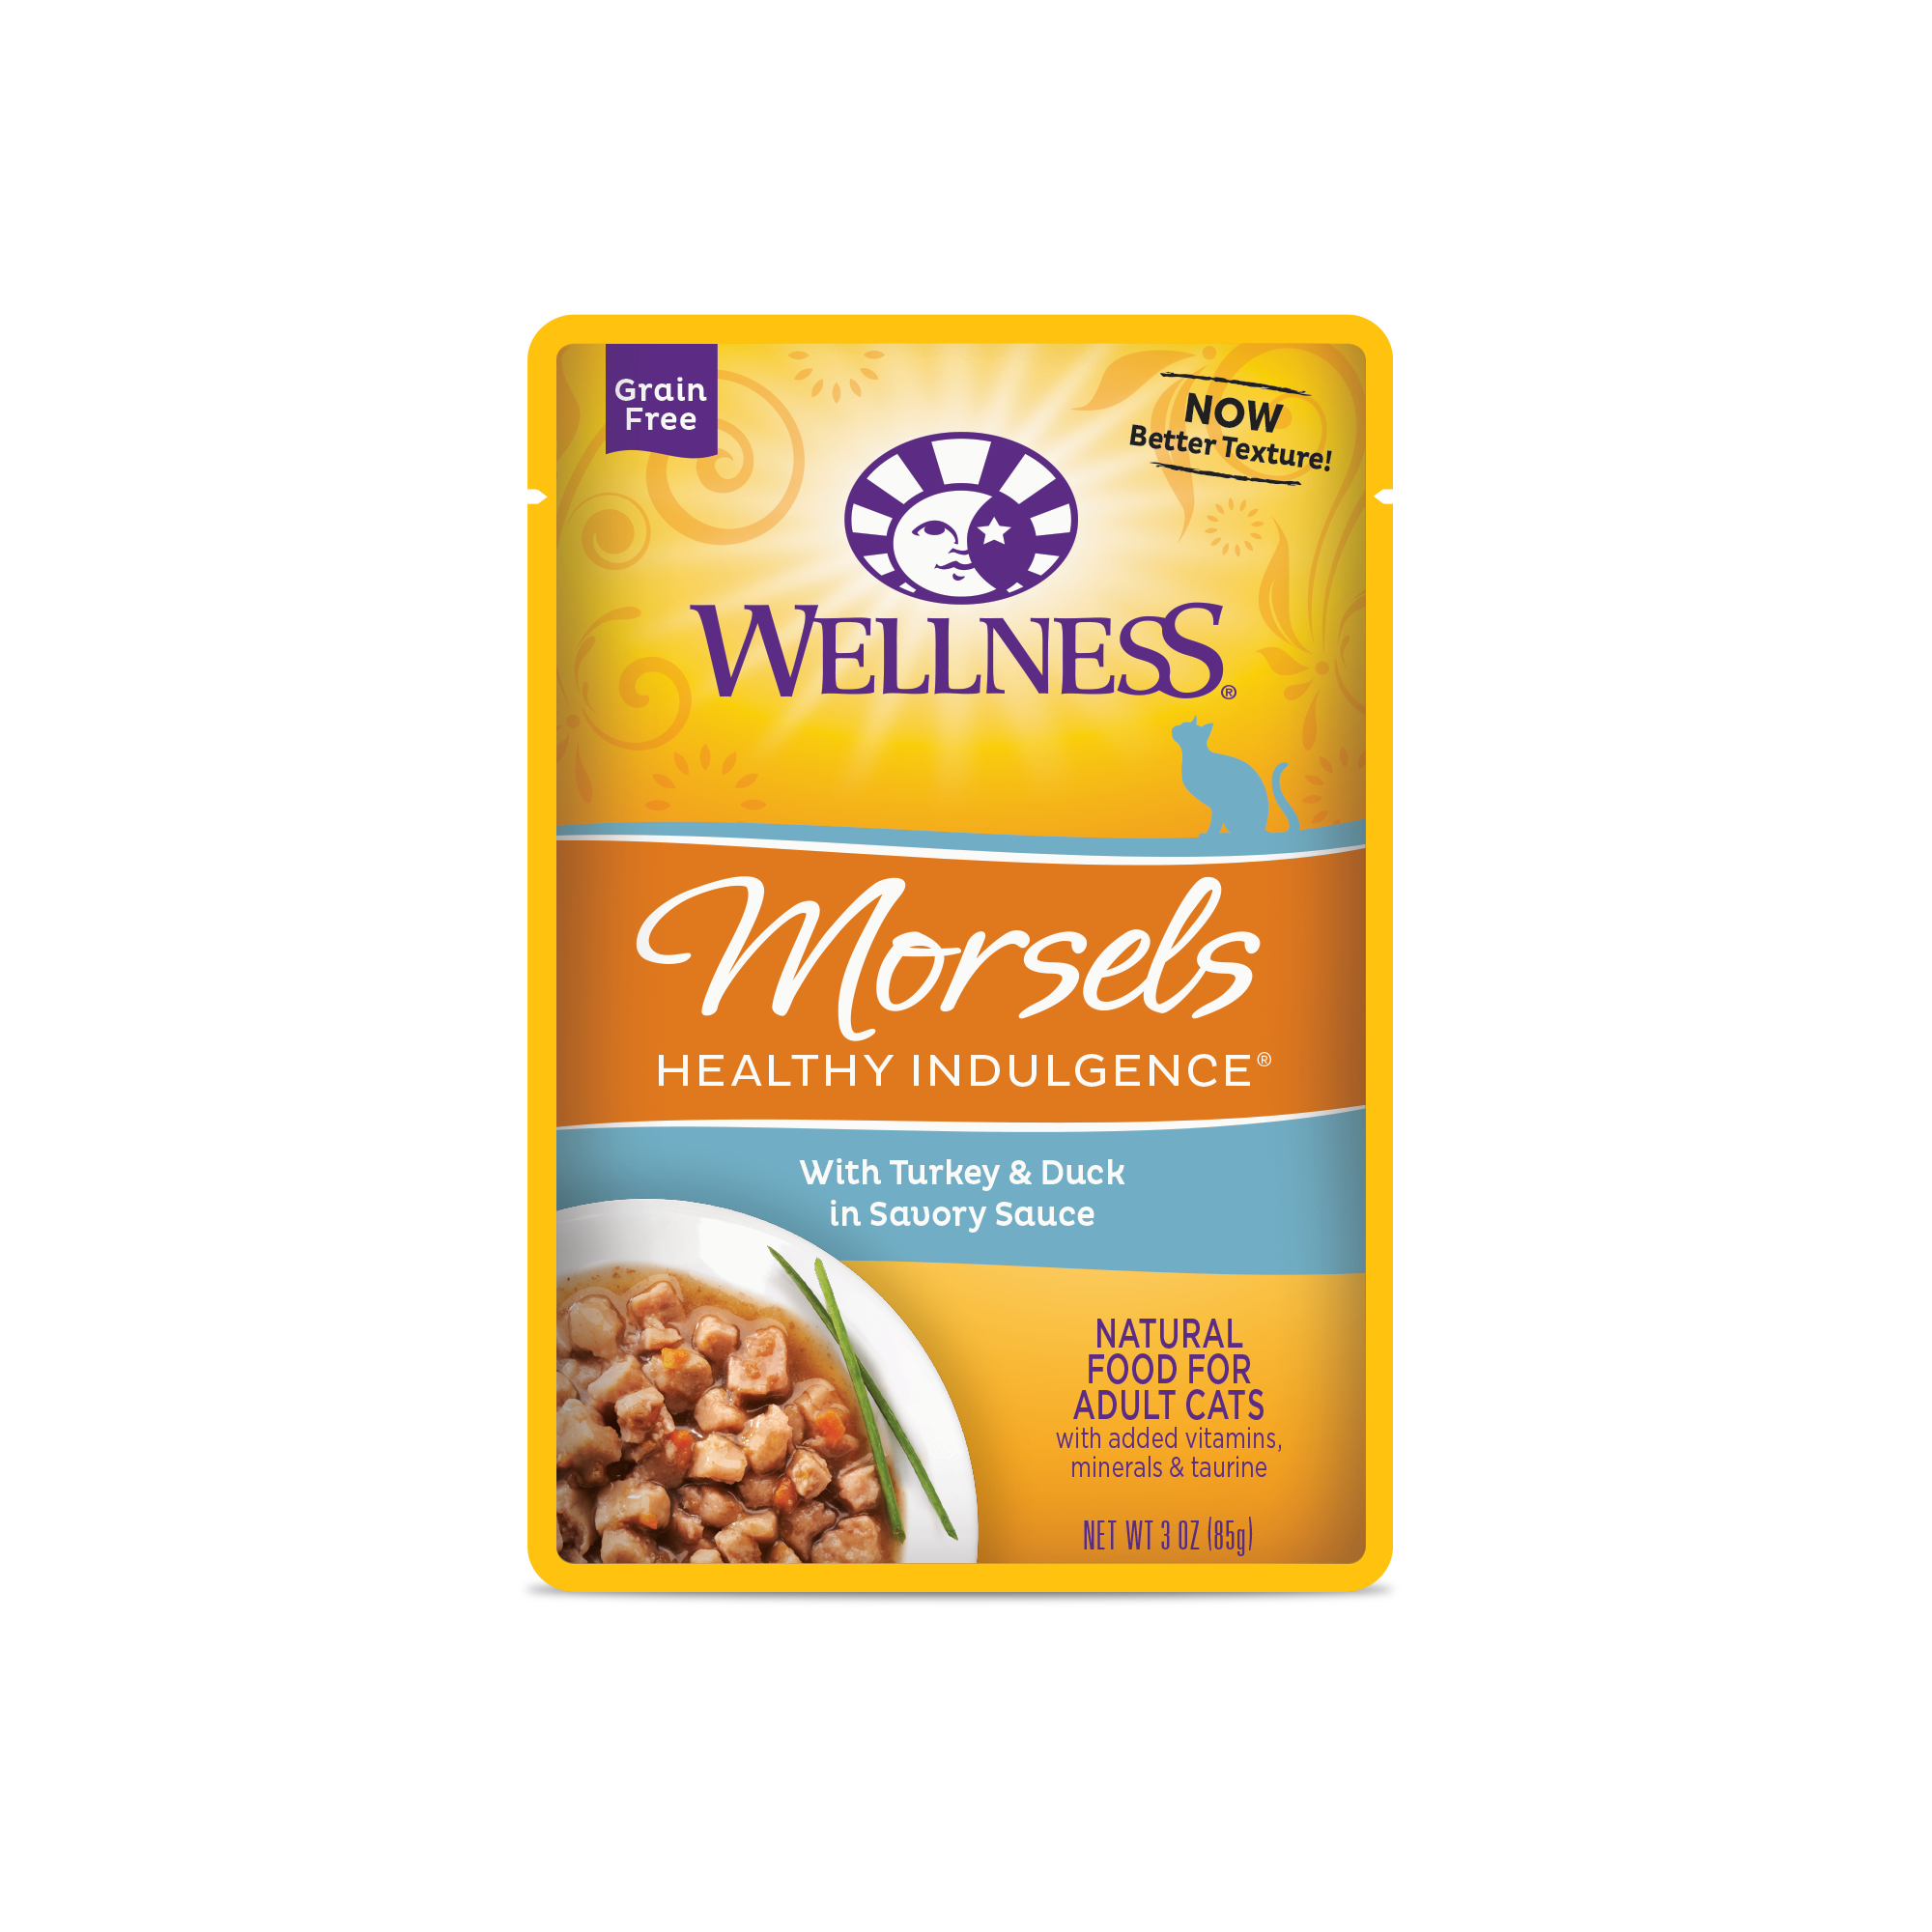 Healthy Indulgence 174 Morsels Turkey Amp Duck Wellness Pet Food